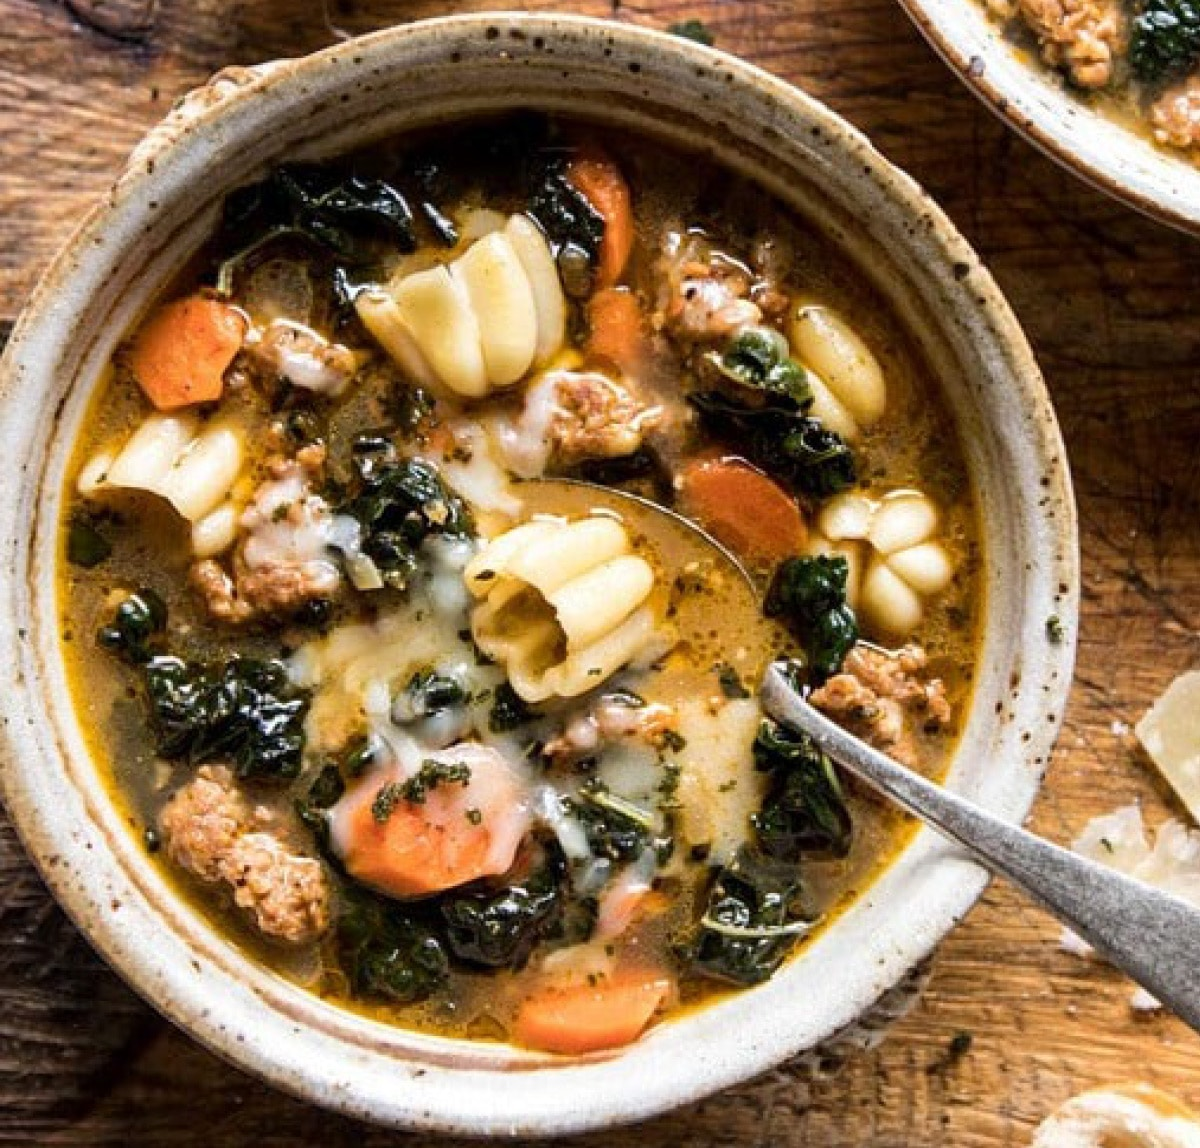 Kale-and-Carrots-National-Soup-Month